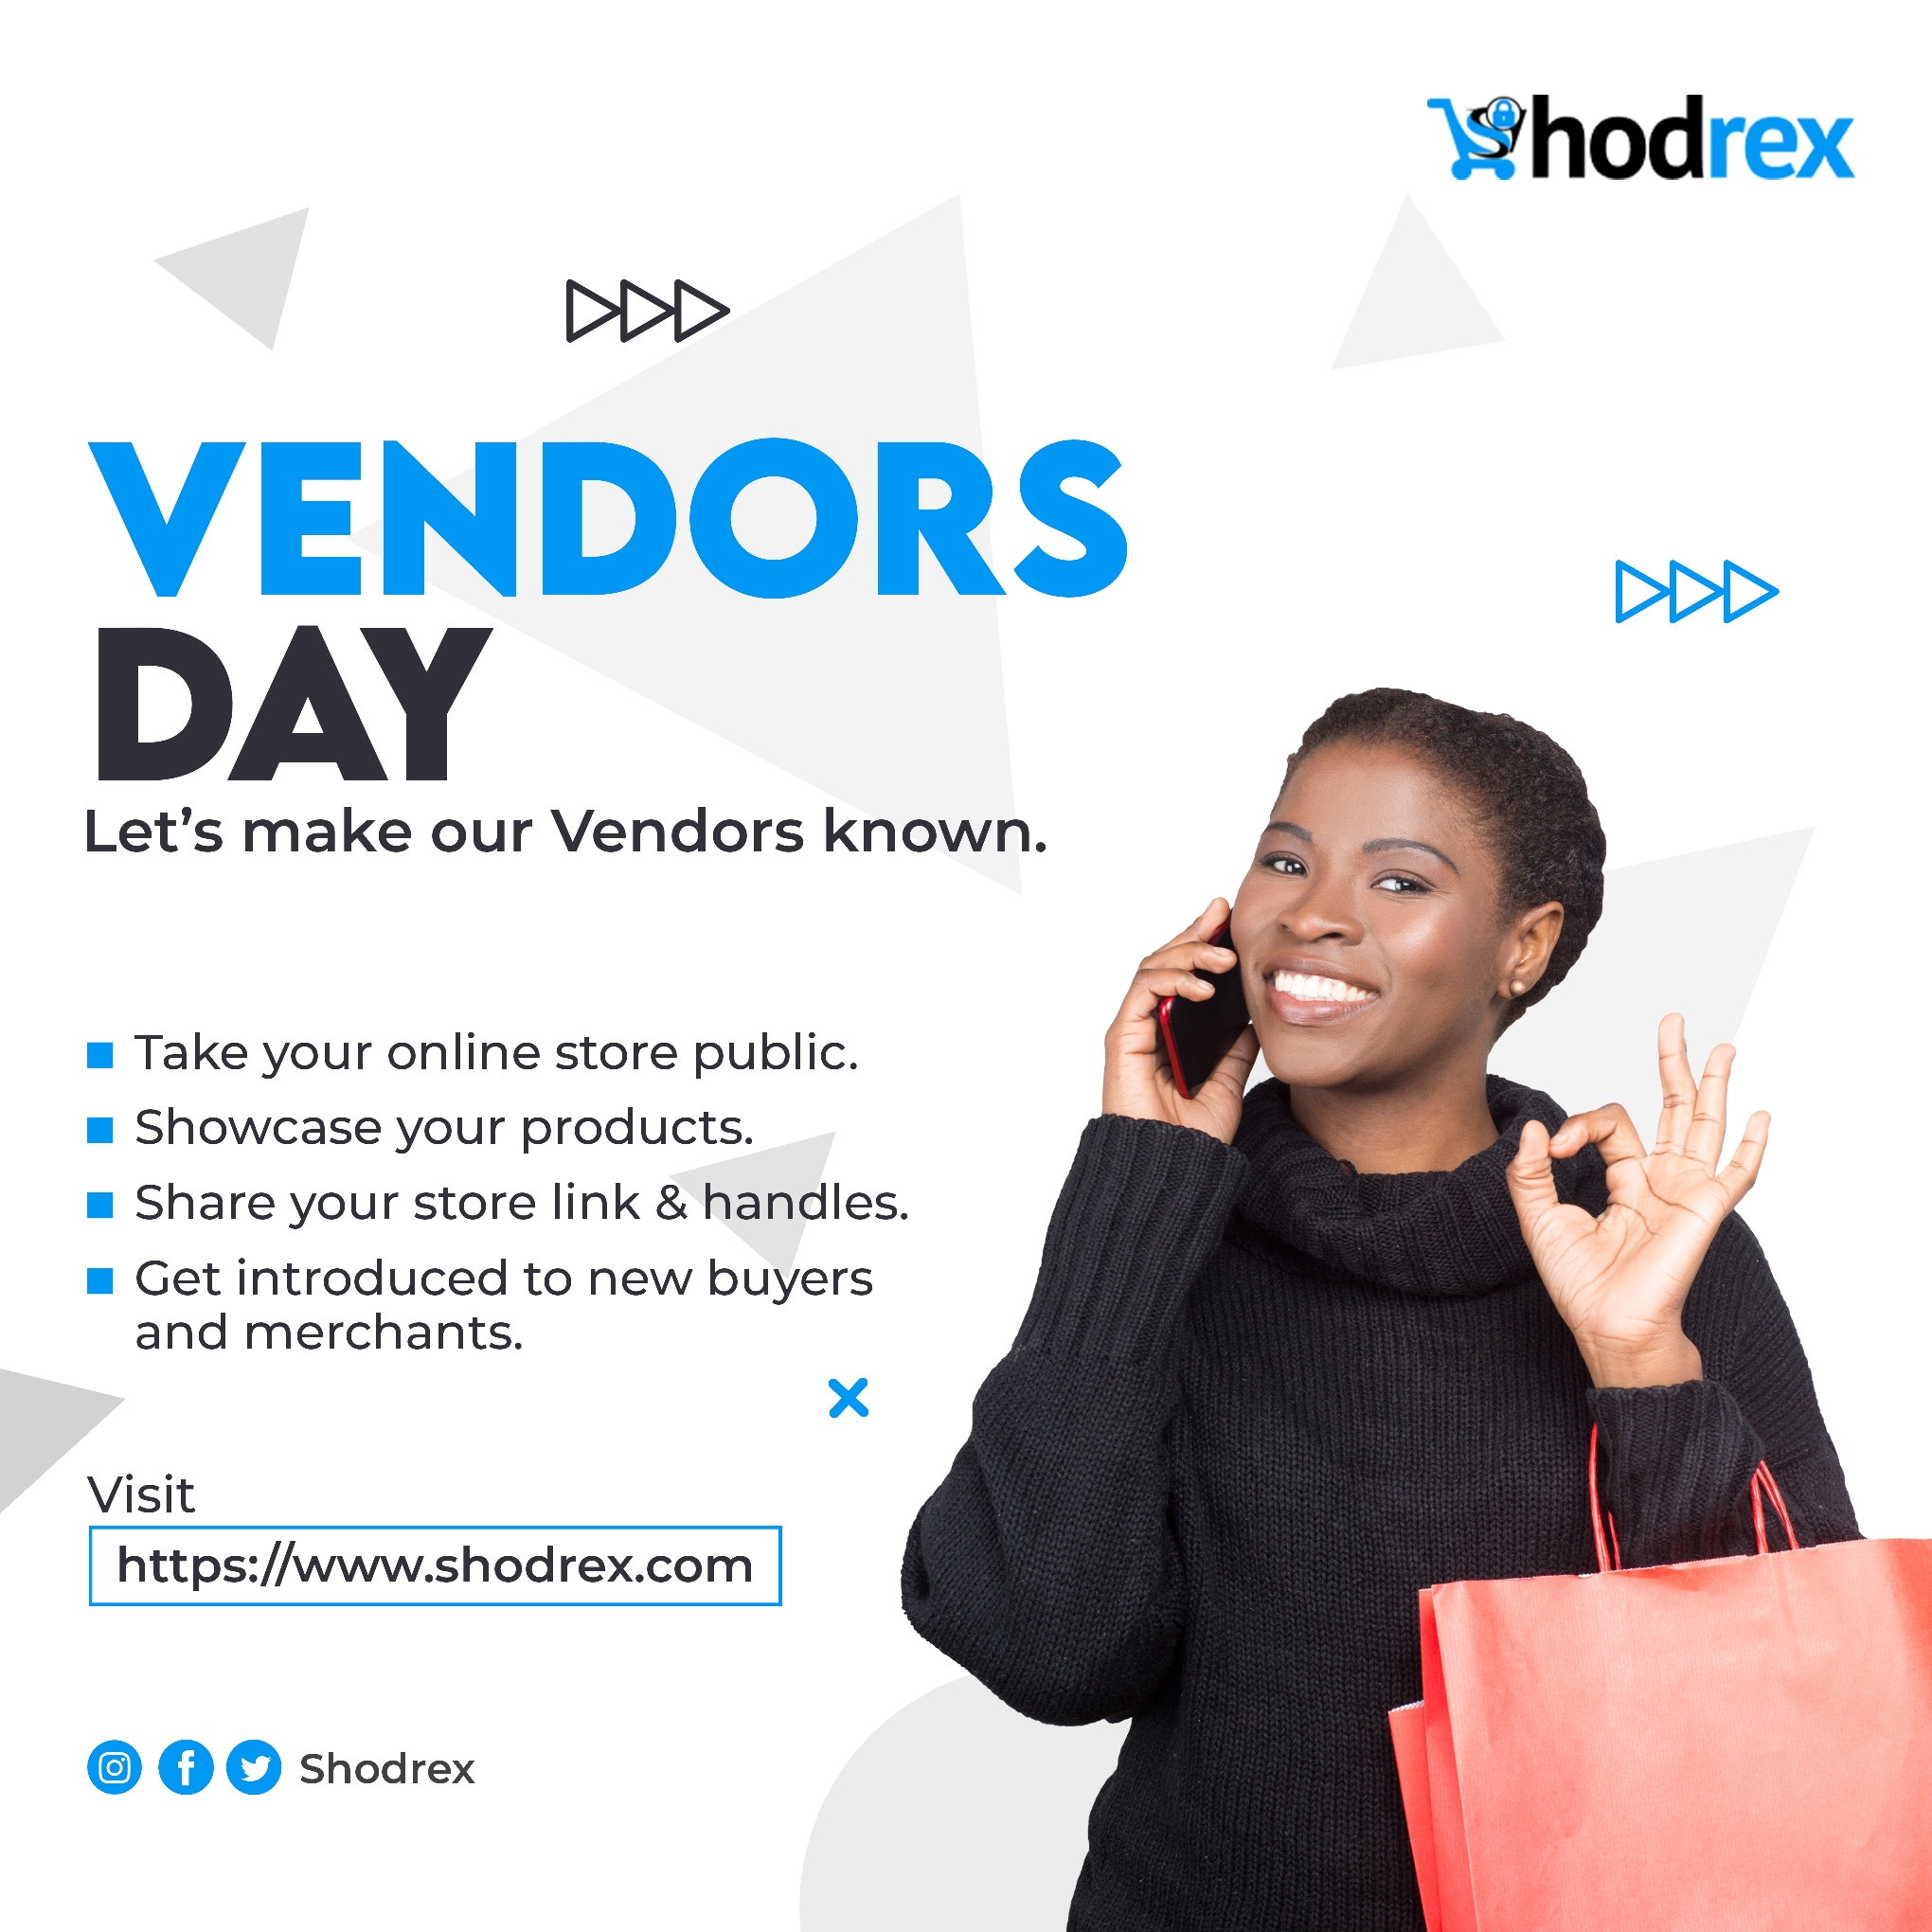 Shodrex vendors day - 2.jpg